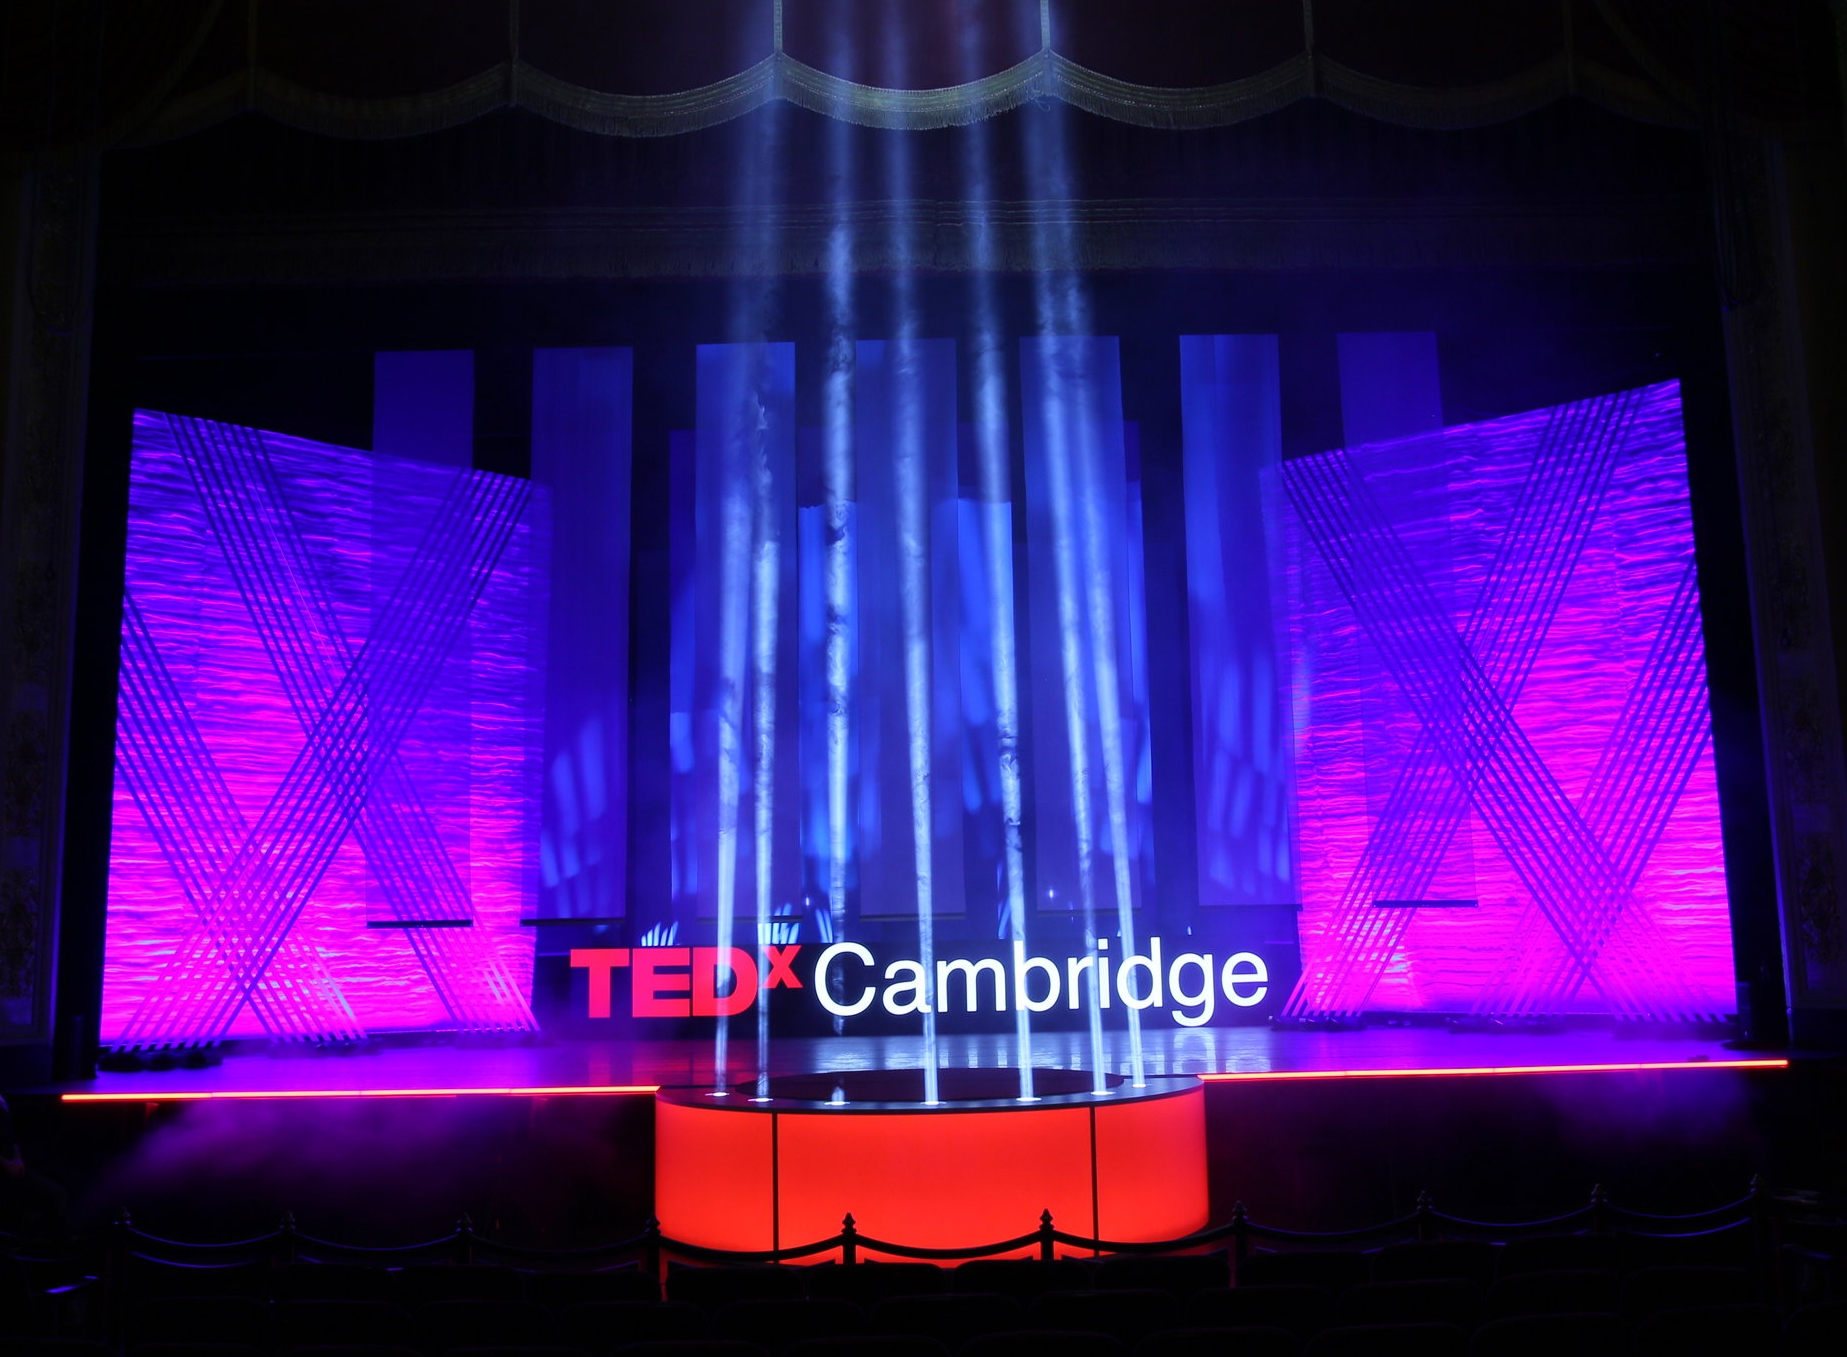 TEDxCambridge - TEDxCambridge 2018 represented our fifth collaboration with Port Lighting, who provided lighting design for our 2,500 guests at the Boston Opera House.This year's show featured a new stage element that Port Lighting collaboratively designed from the initial idea and product testing, through to fabrication review and on-site venue setup.The result was a semi-circular lightbox featuring LED luminaries and moving head uplights that created a dramatic theatrical effect for the event production. It's a pleasure working with such a talented group of creative lighting professionals who share our passion for excellence.Dmitri GunnExecutive Director